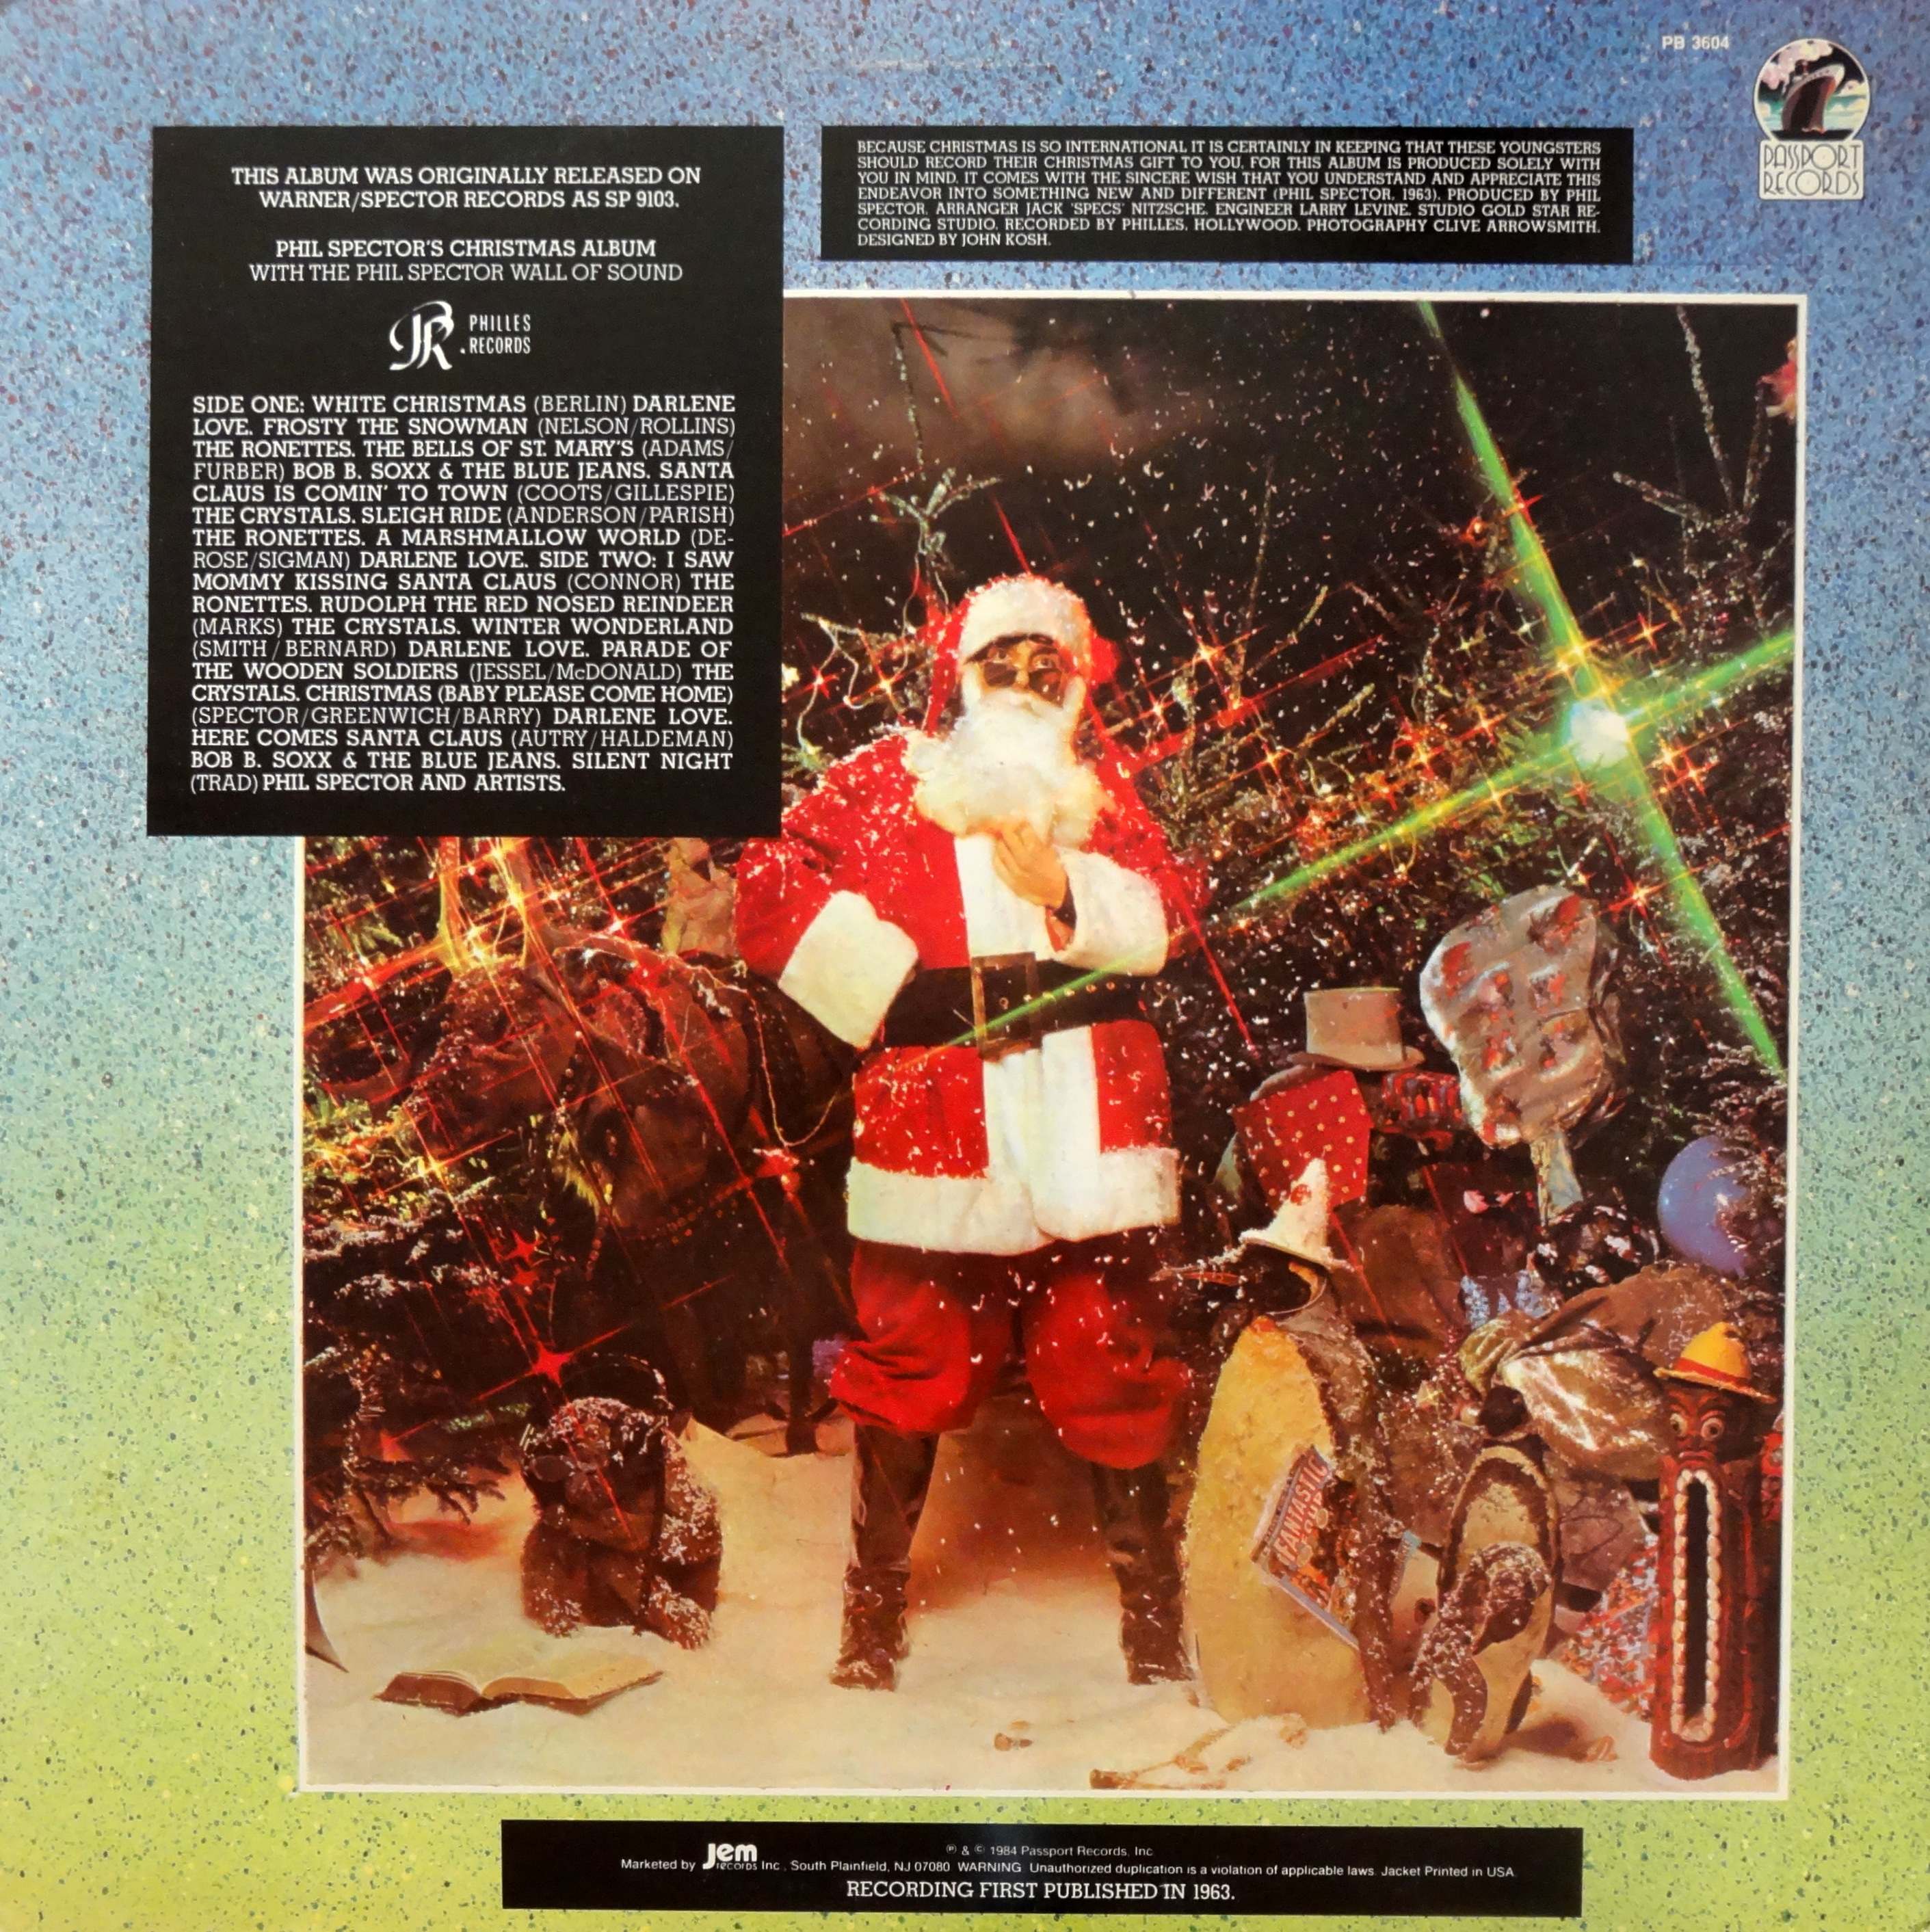 From The Stacks: Phil Spector's Christmas Album – Why It Matters